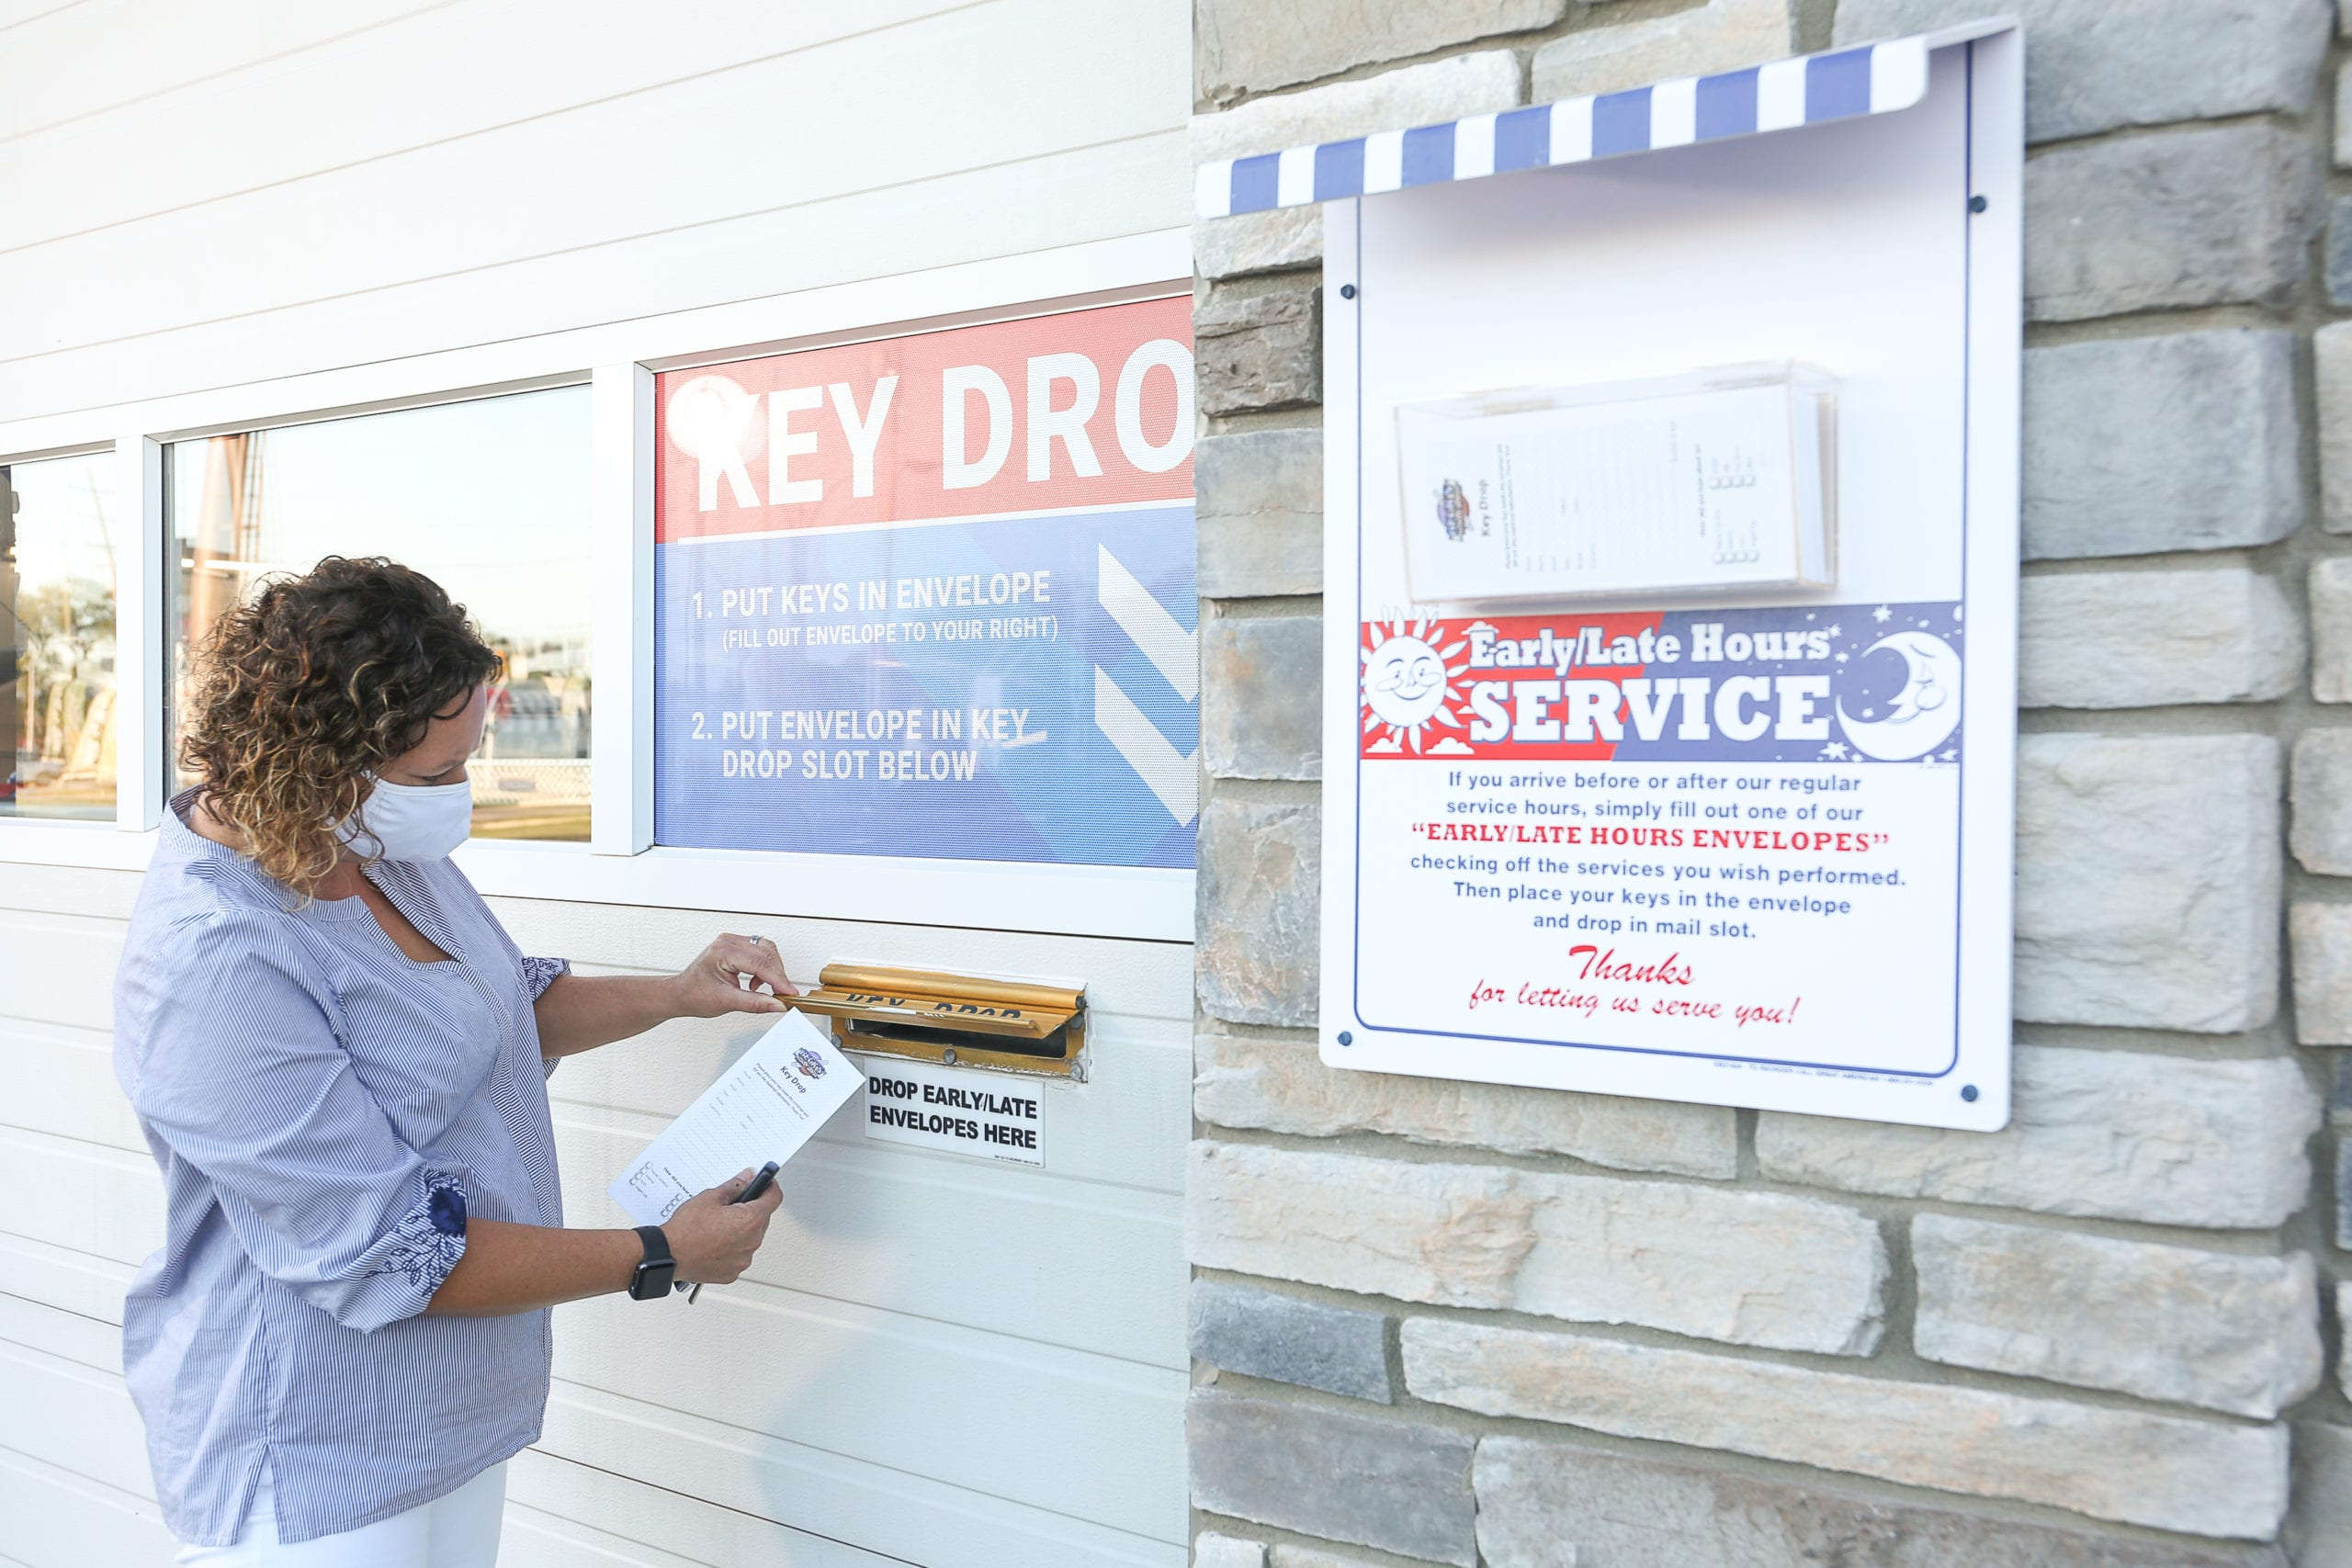 beck's auto center's after hours key drop option